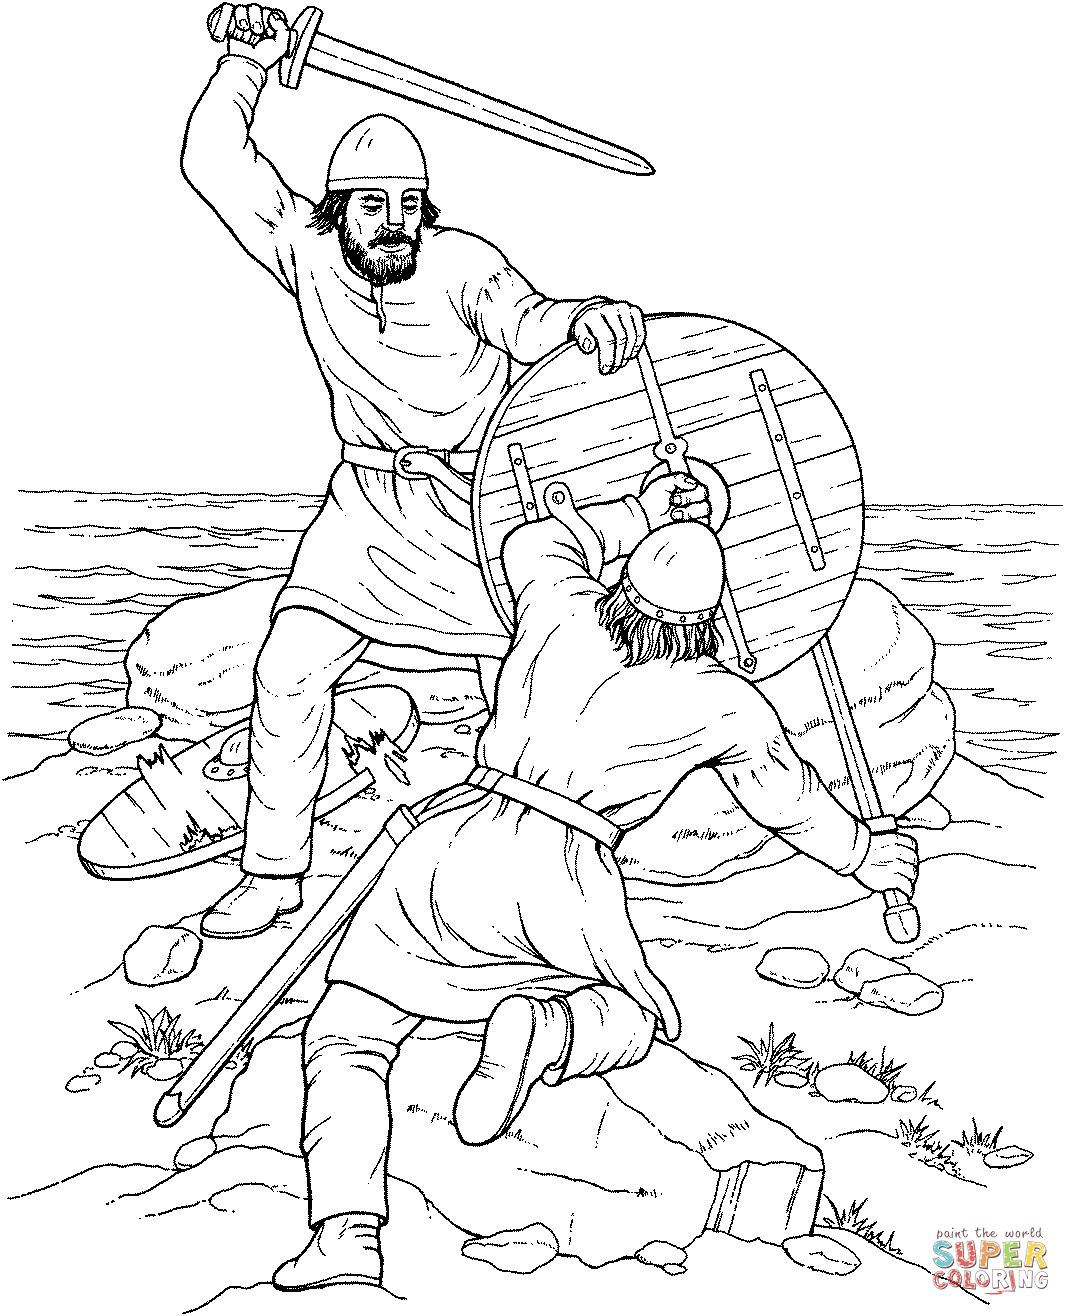 Viking Coloring Pages Images In 2019 Http Www Wallpaperartdesignhd Us Viking Coloring Pages Images In 2019 Coloring Pages Free Coloring Pages Viking History